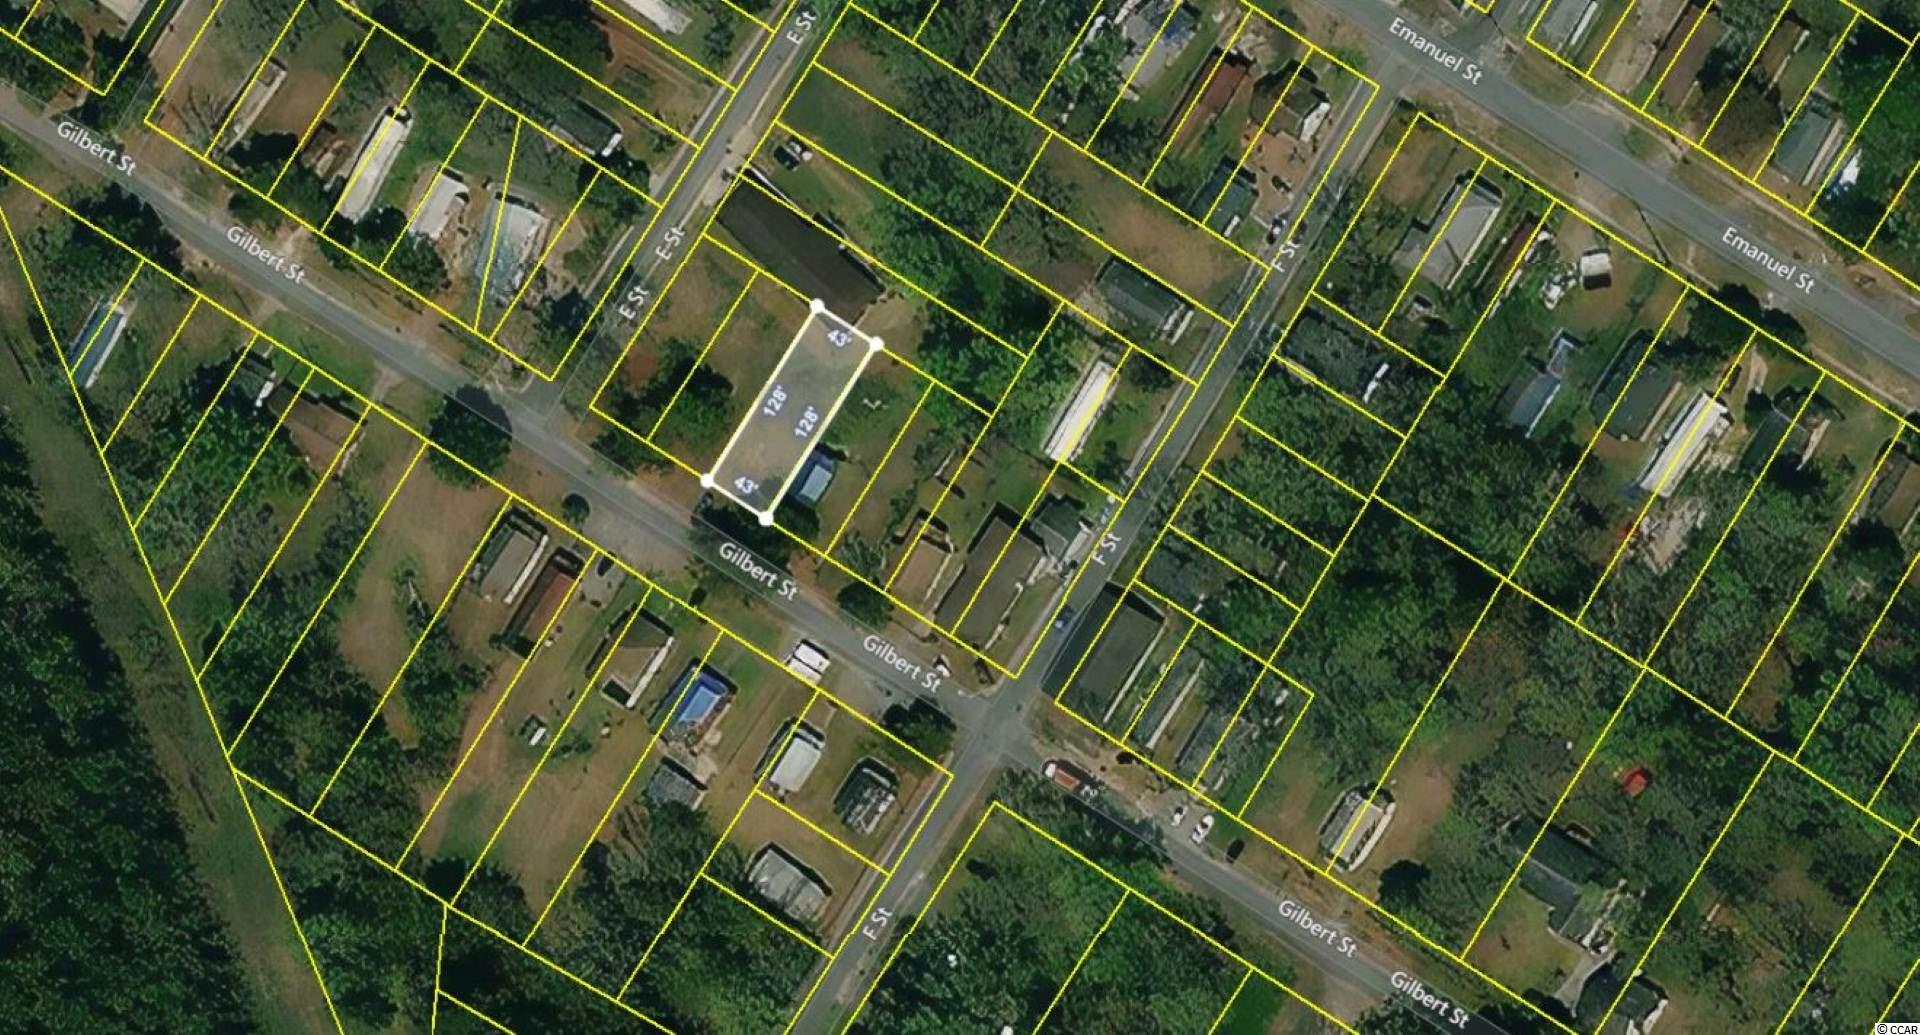 Vacant lot with no deed restrictions. It is zoned for stick-built homes (No Mobile). Property has city water and sewer at the street.